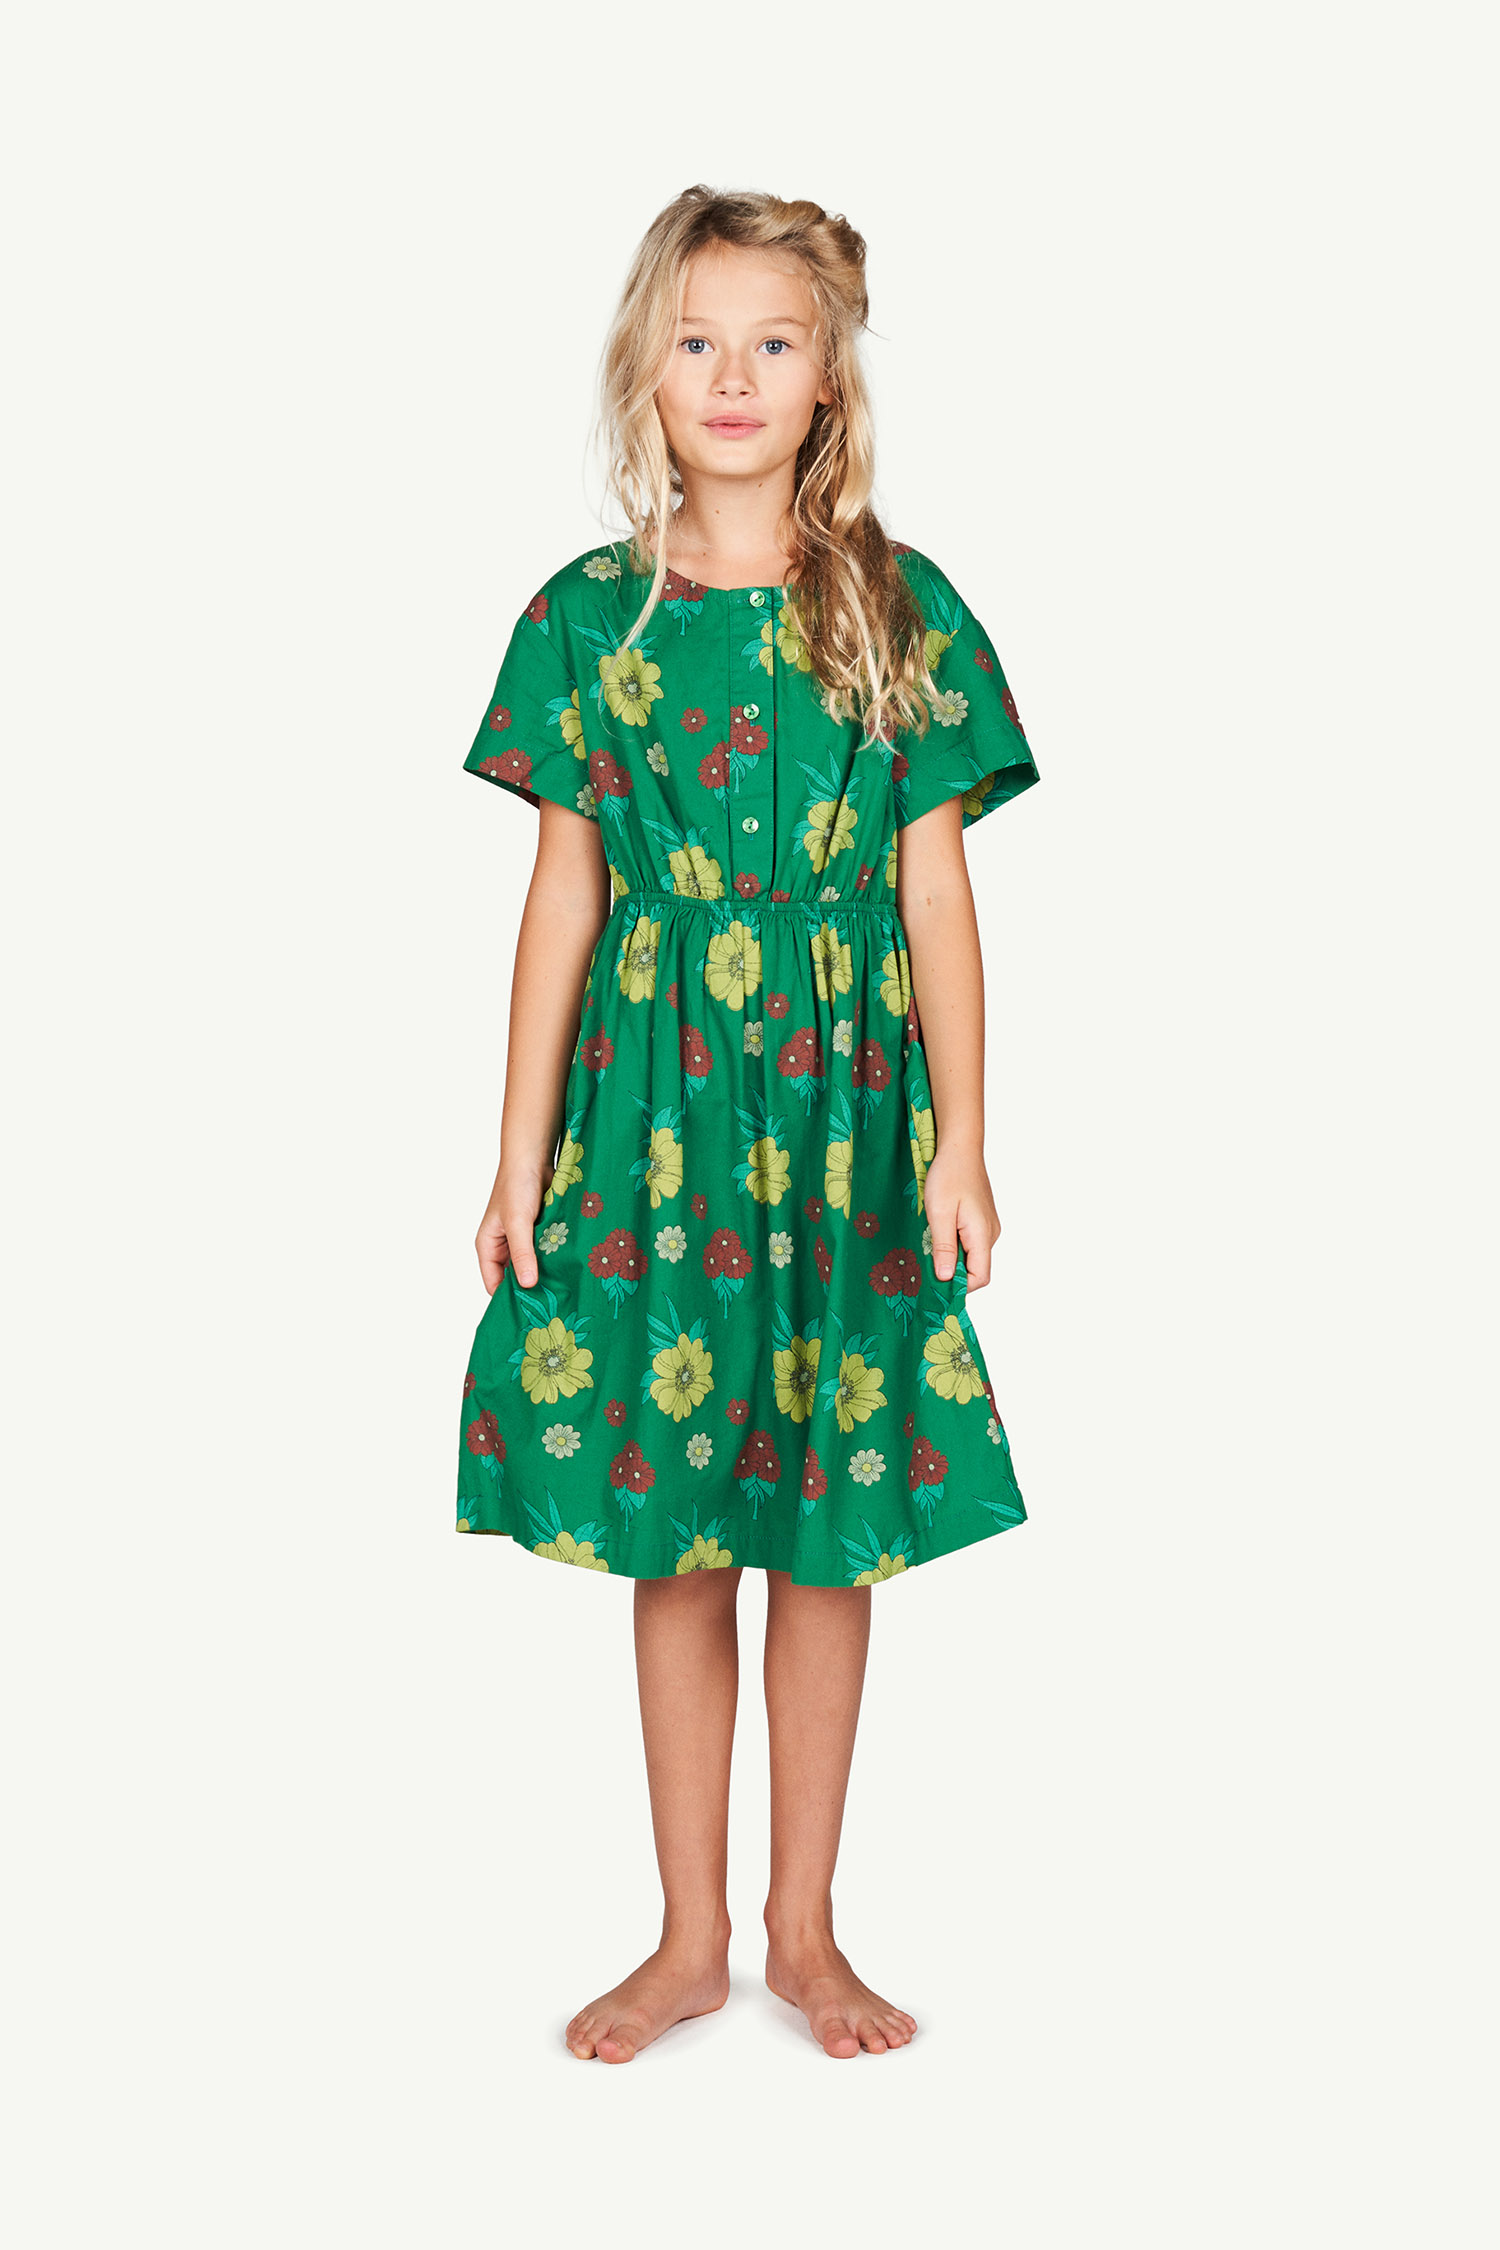 the animals observatory dolphin kids dress green flowers